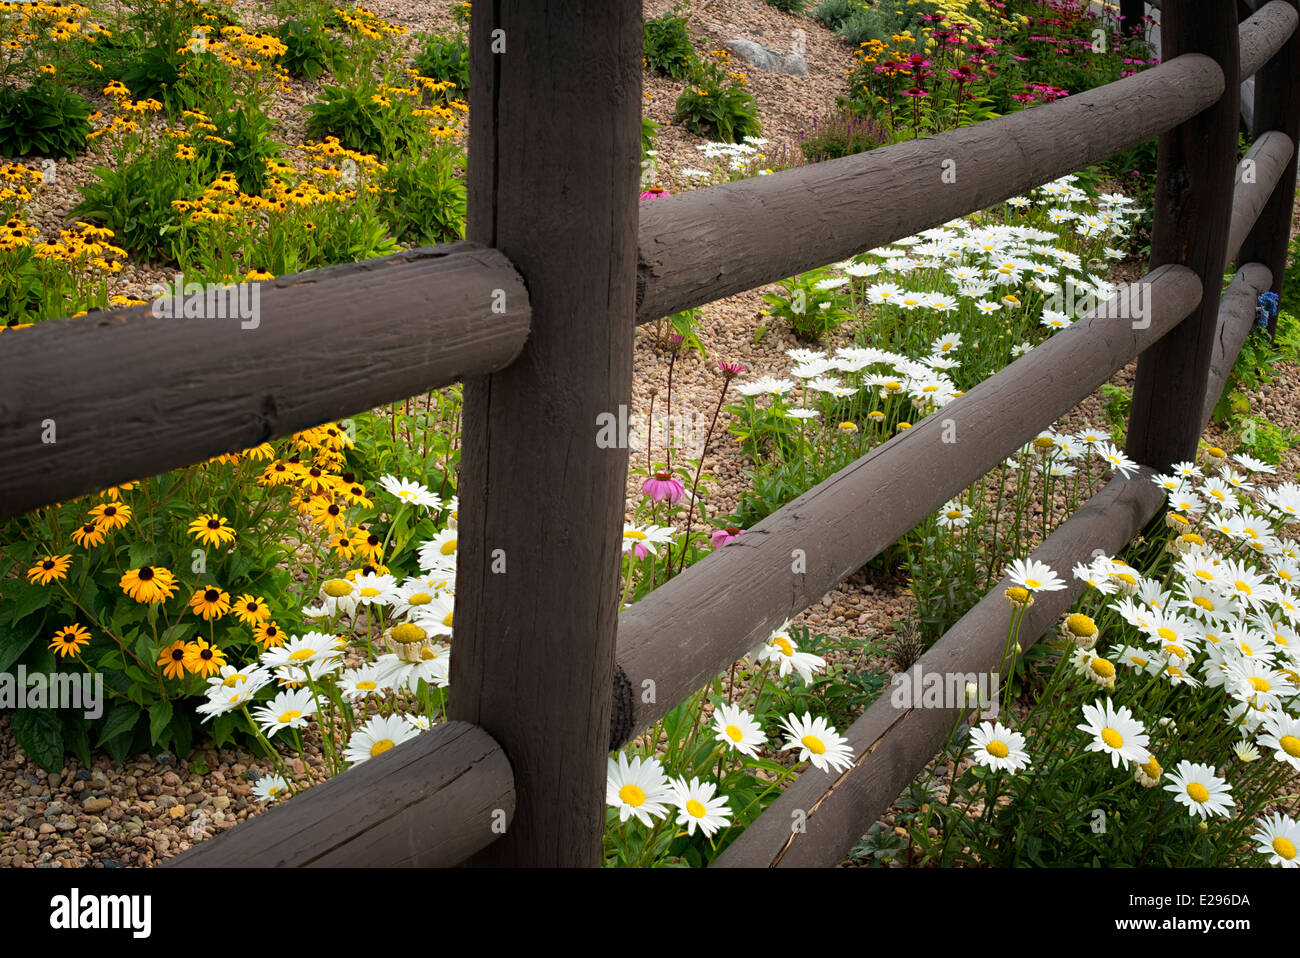 Fence and garden flowers. Vail Village, Colorado - Stock Image